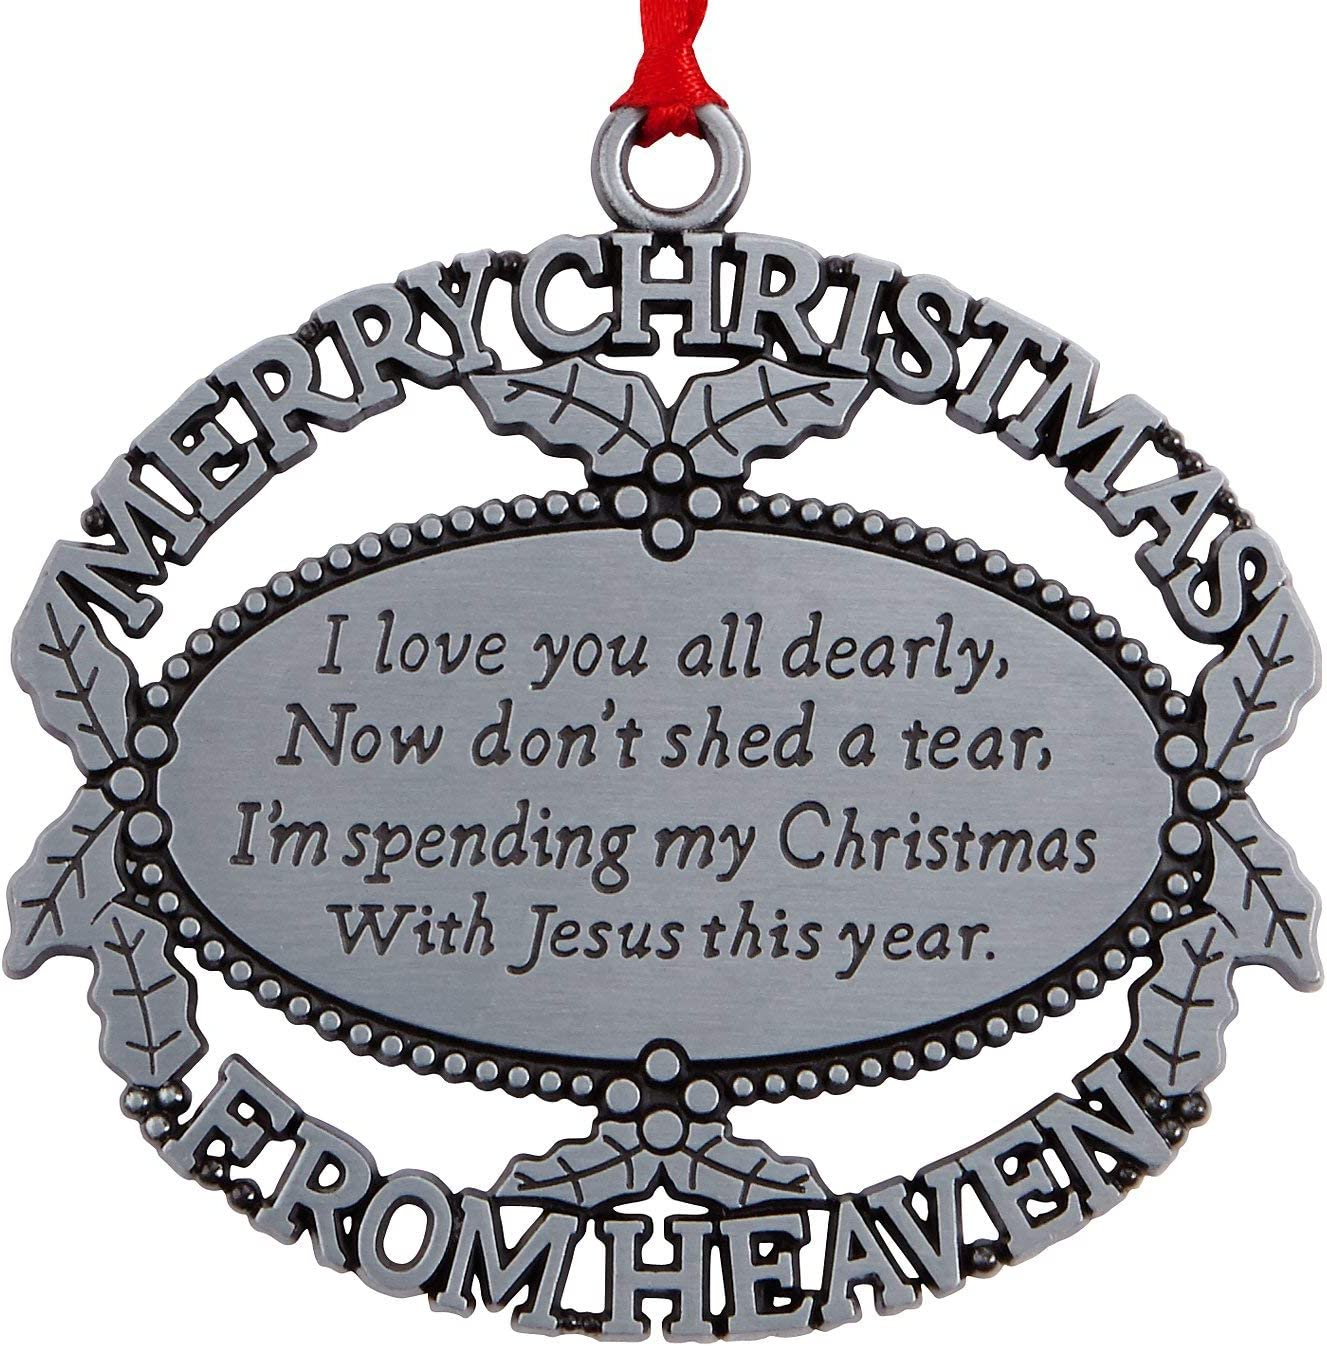 Merry Christmas From Heaven Pewter Finish Keepsake Memorial Ornament with Poem in Gift Box